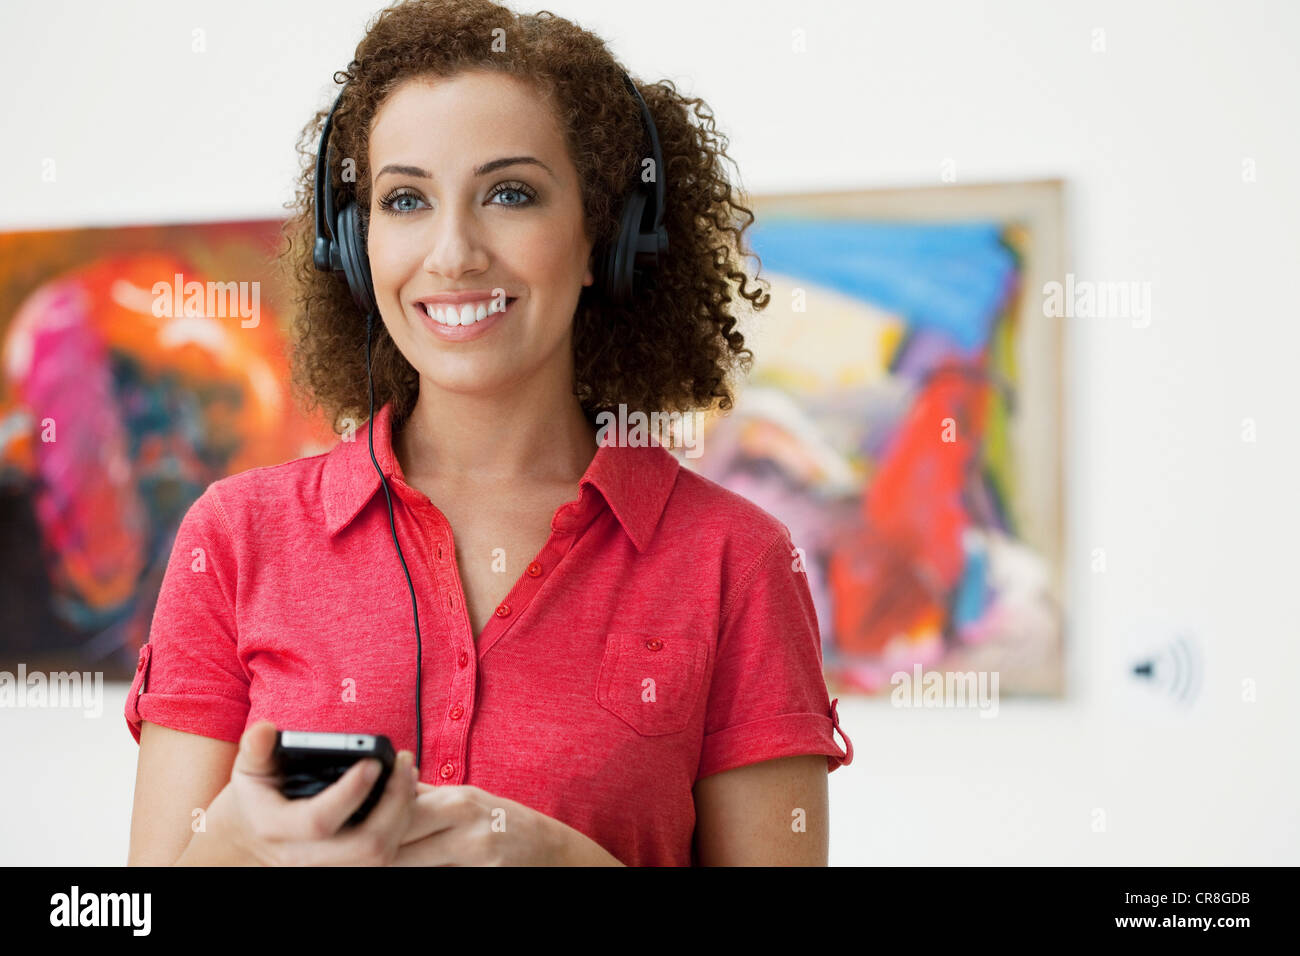 Young woman using audio guide in art gallery - Stock Image